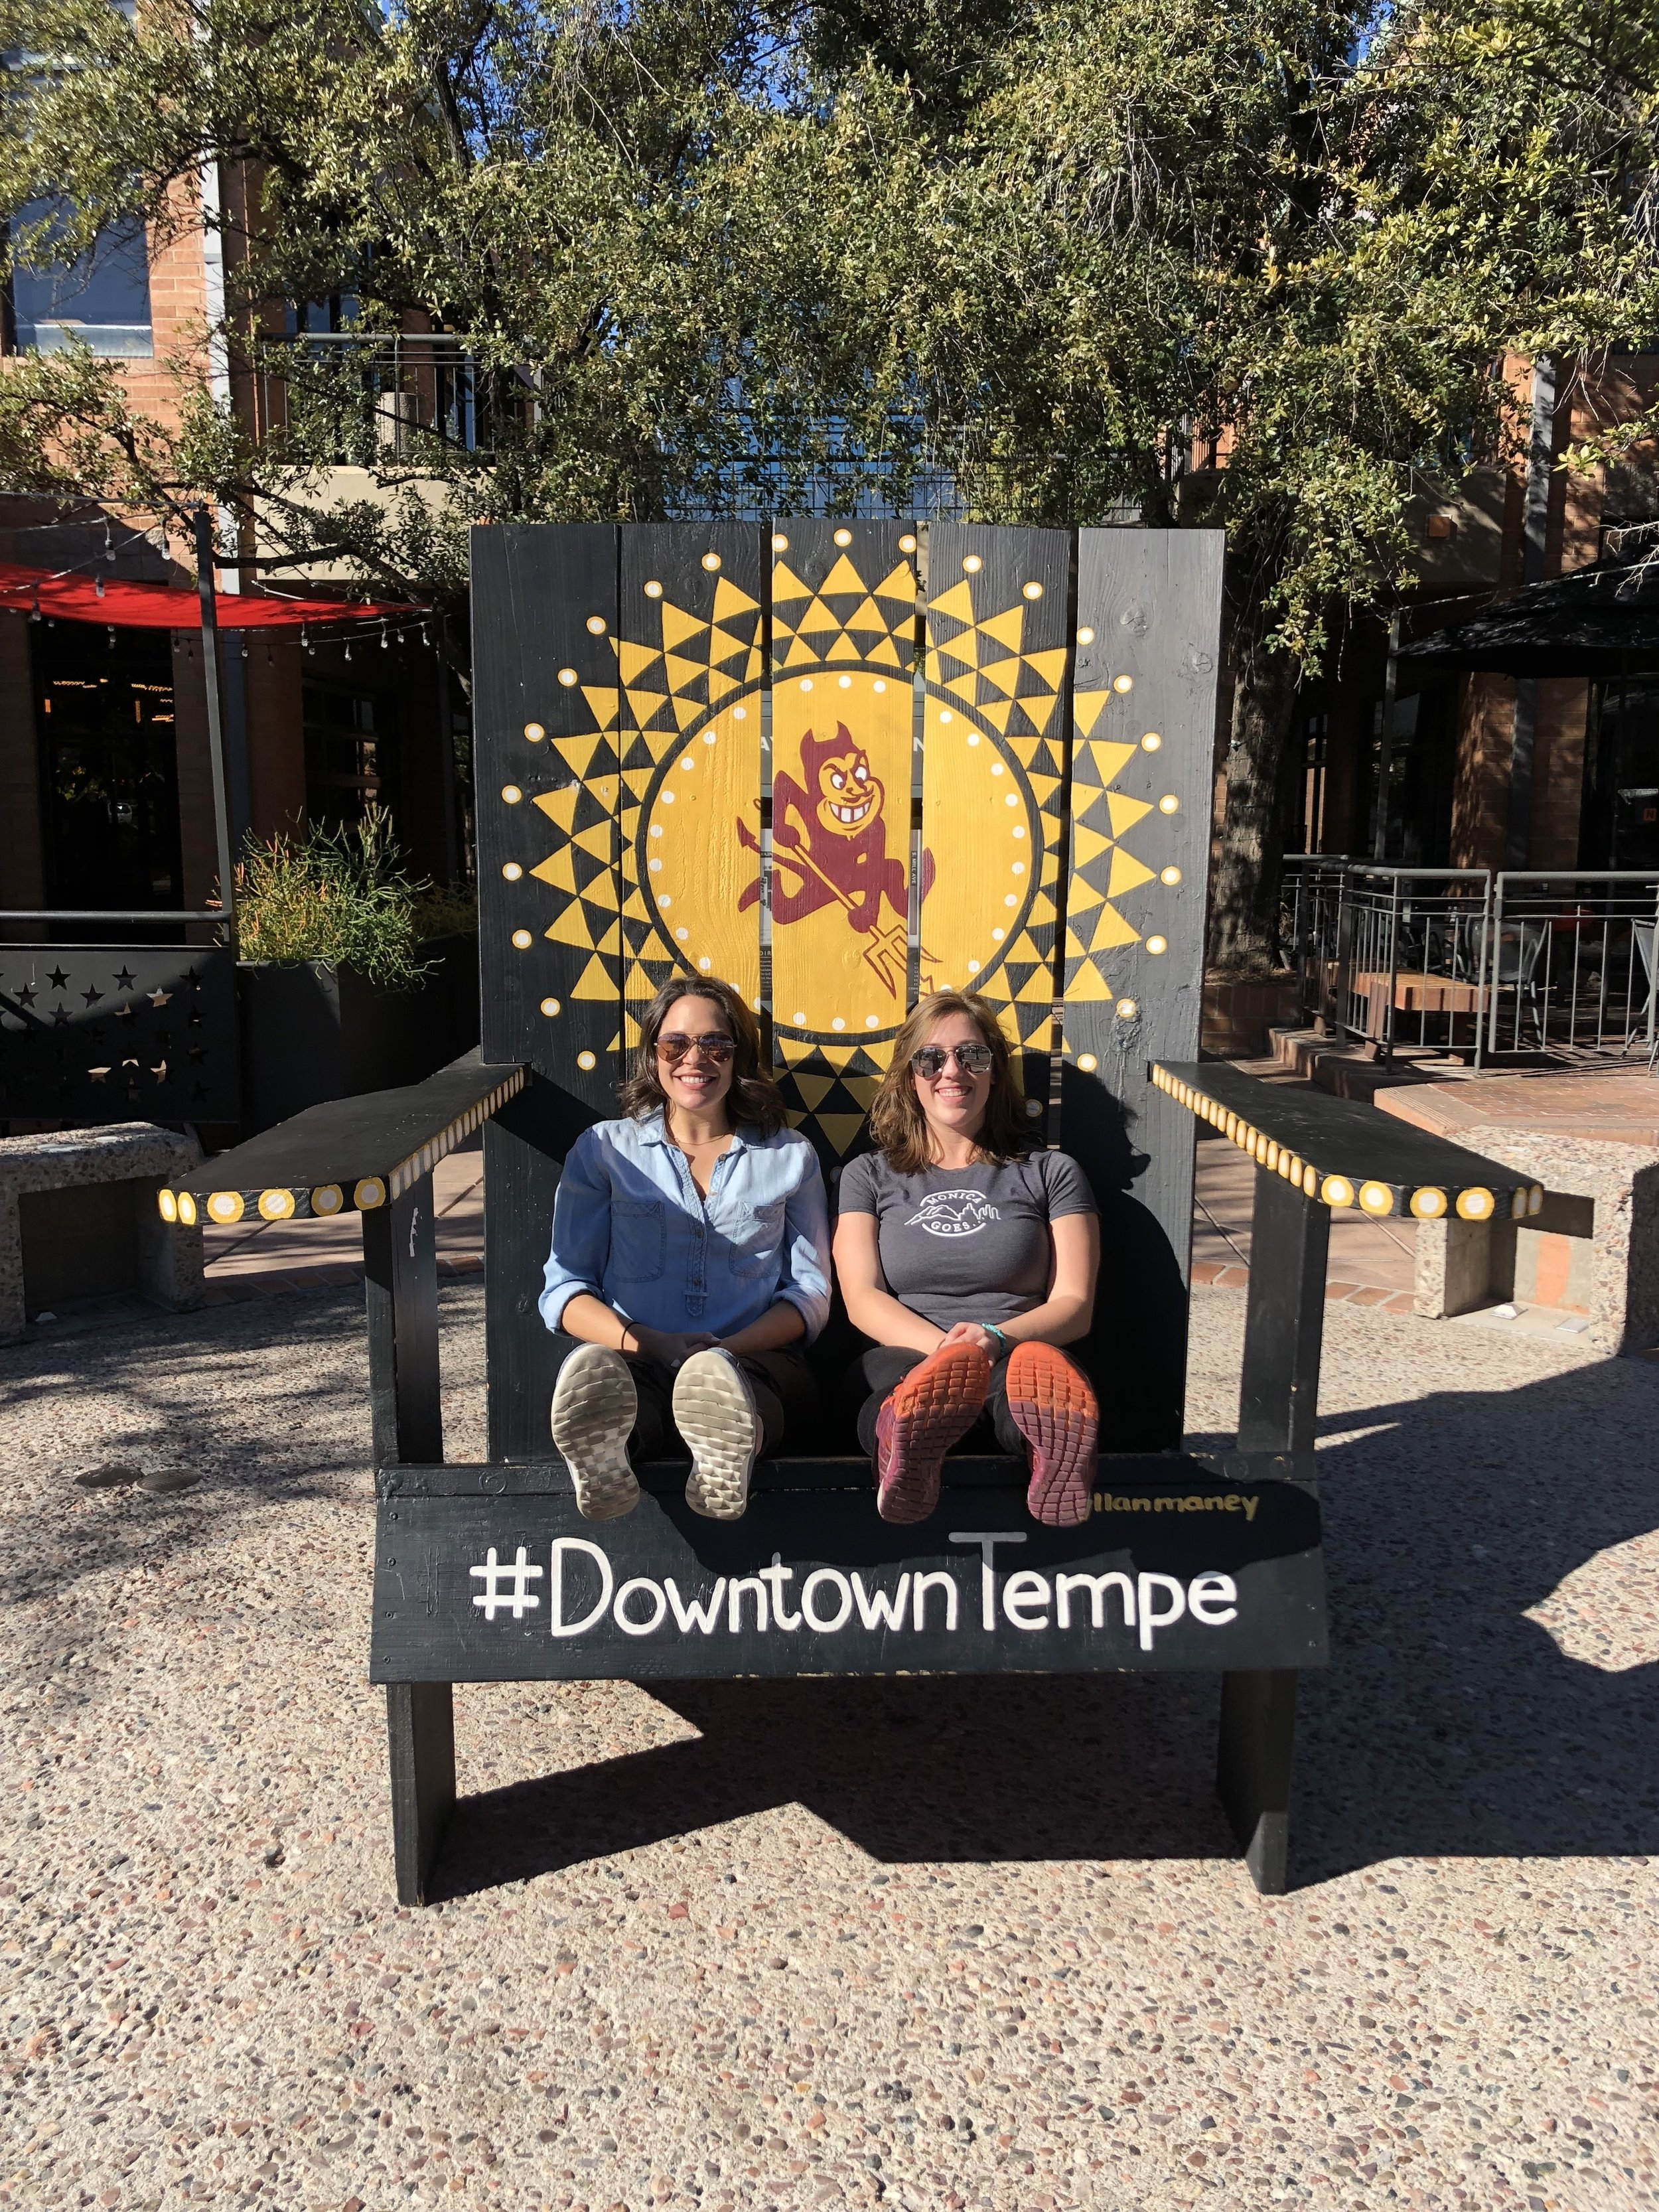 #DowntownTempe